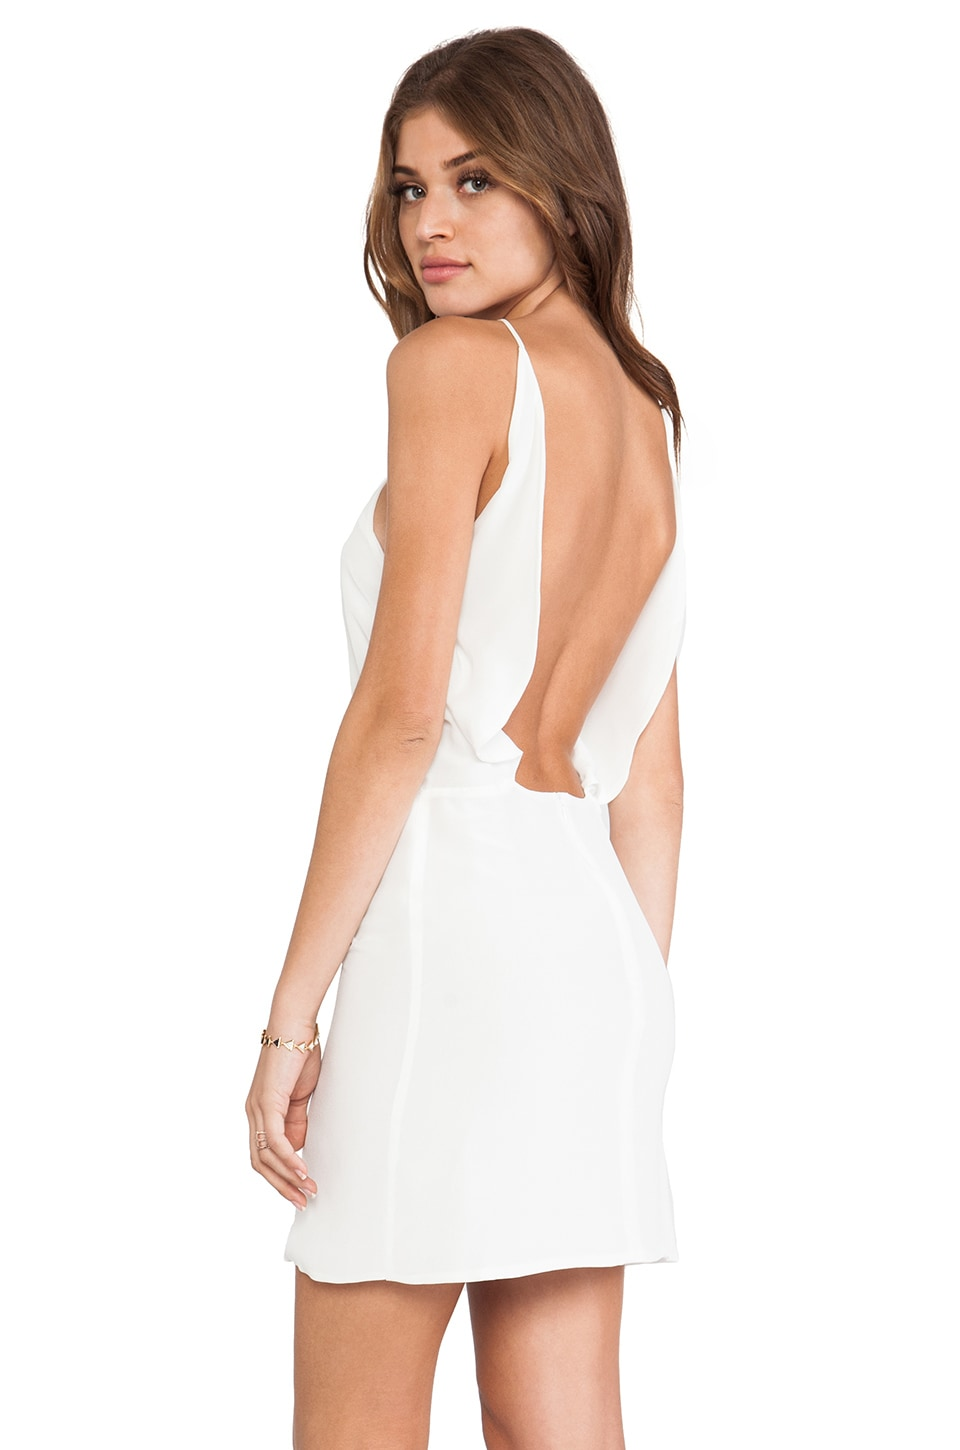 Assali Paola Dress in White